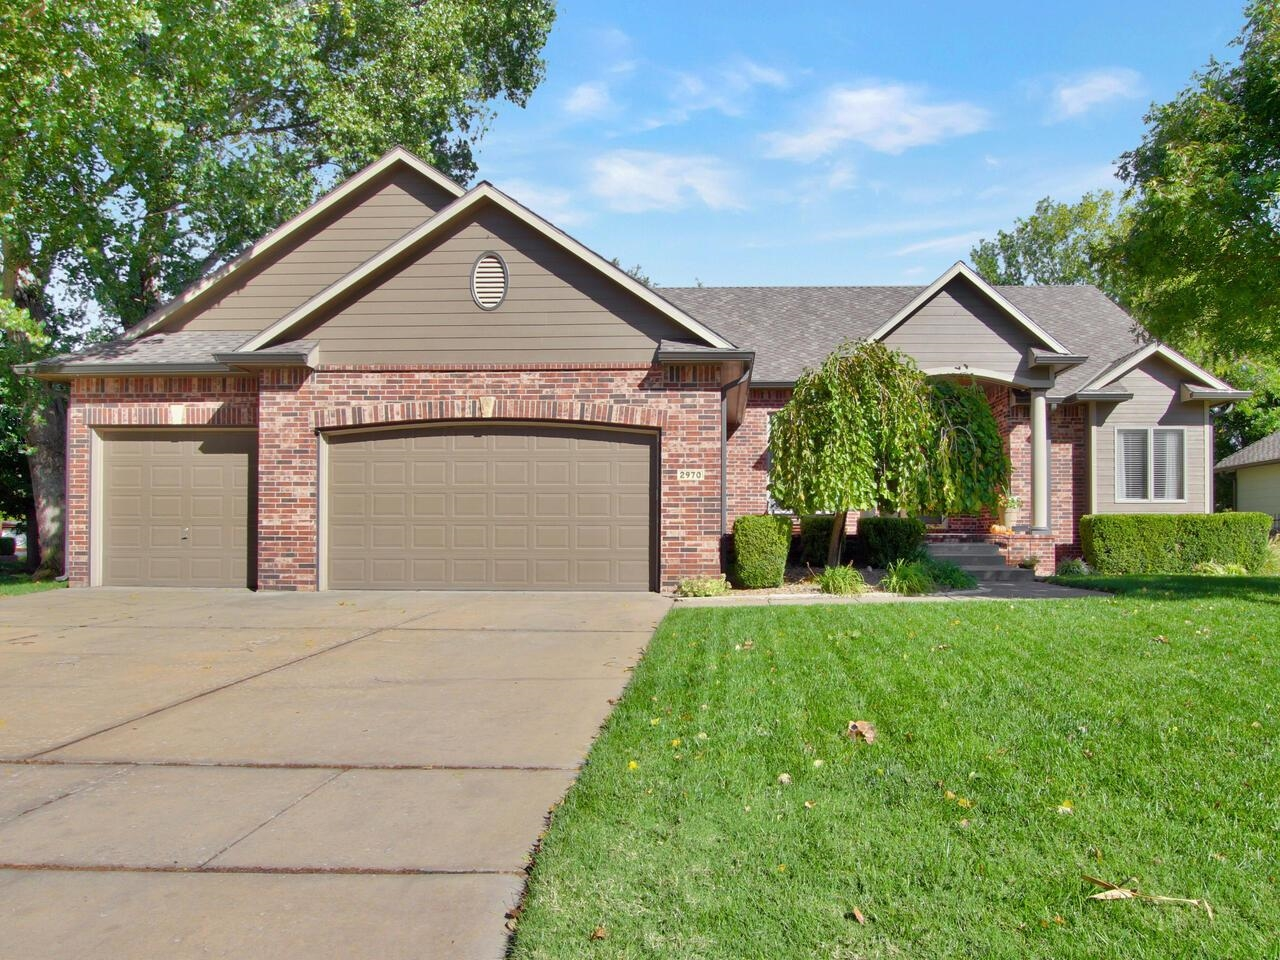 This beautiful 4 bedroom, 3 bath home , located in the highly sought after Reflection Ridge neighbor